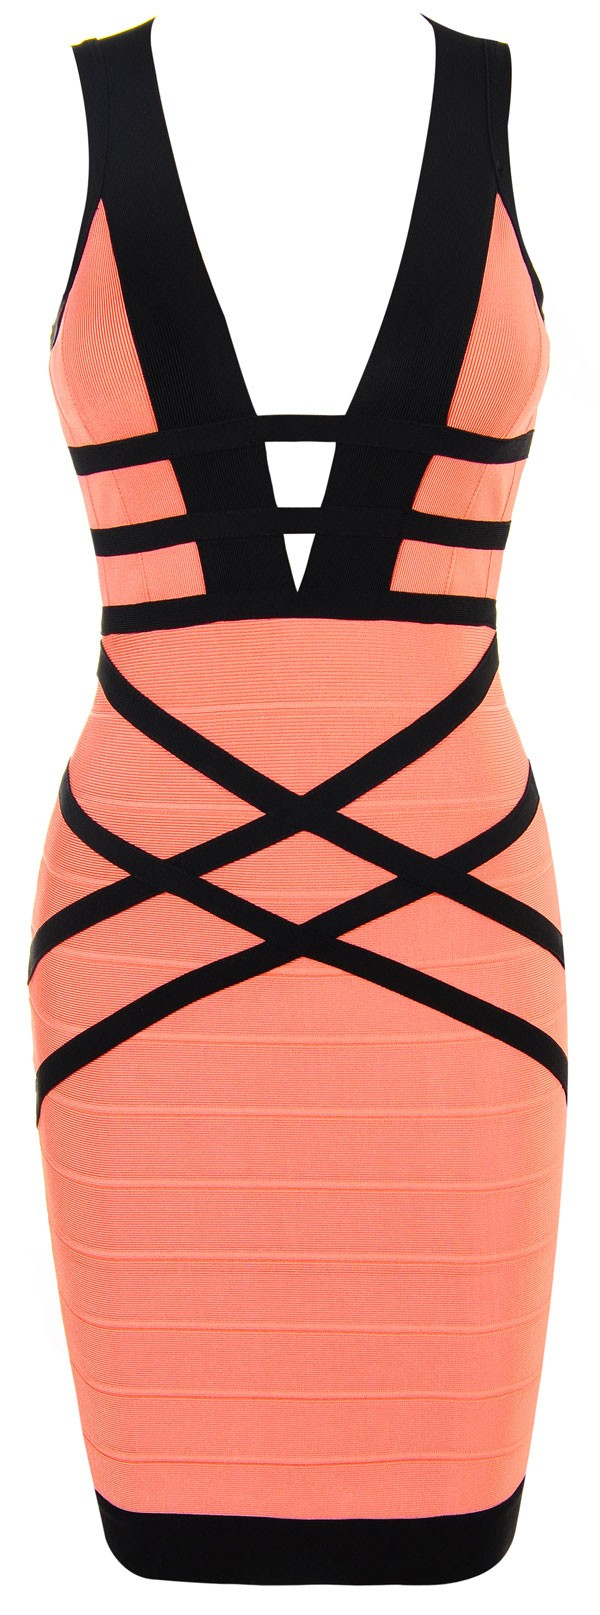 Herve Leger Pink V Neck Backless Woven Dress